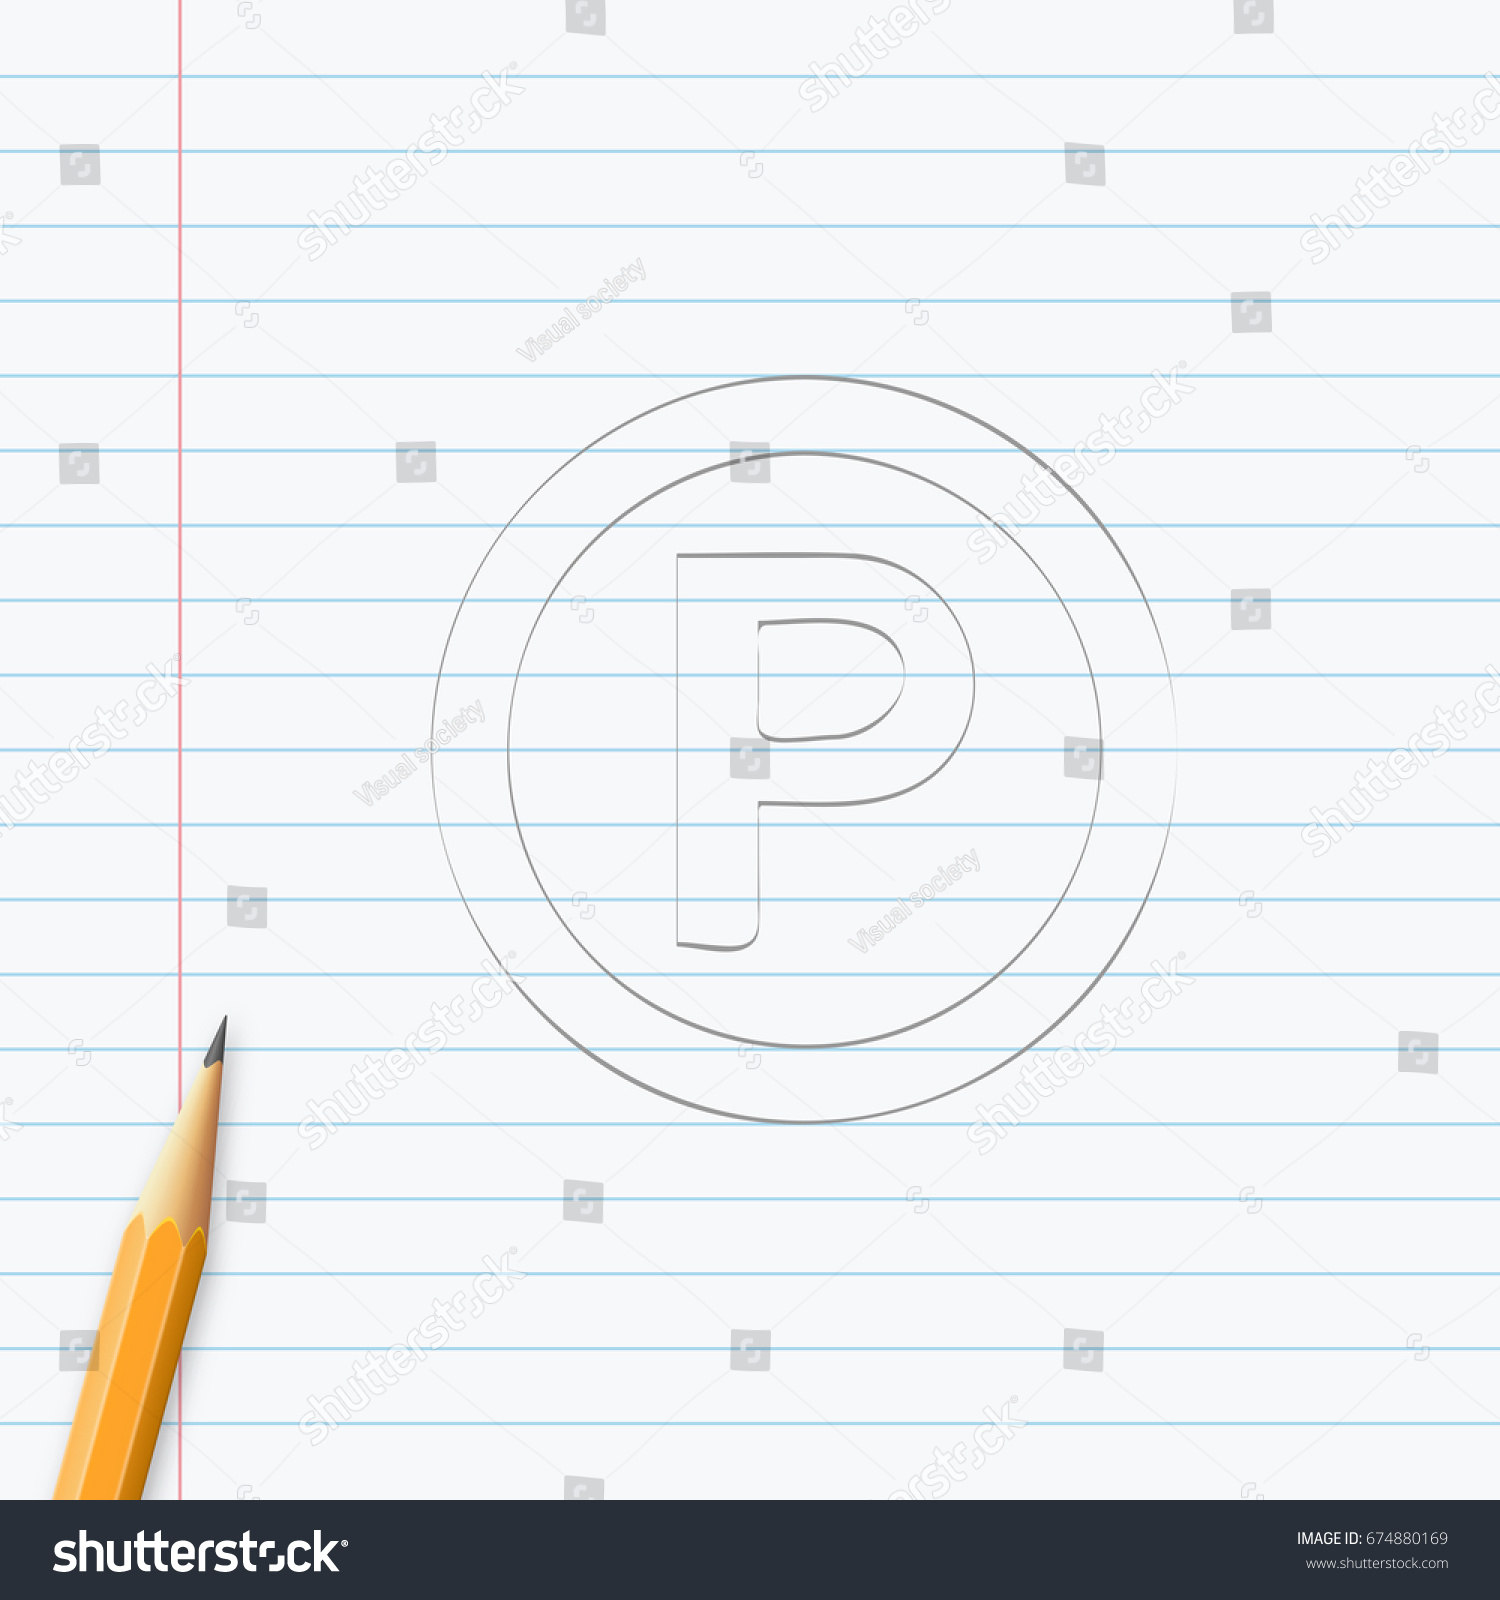 P sound recording copyright symbol hand stock vector 674880169 p sound recording copyright symbol hand drawn with pencil on a paper sheet vector biocorpaavc